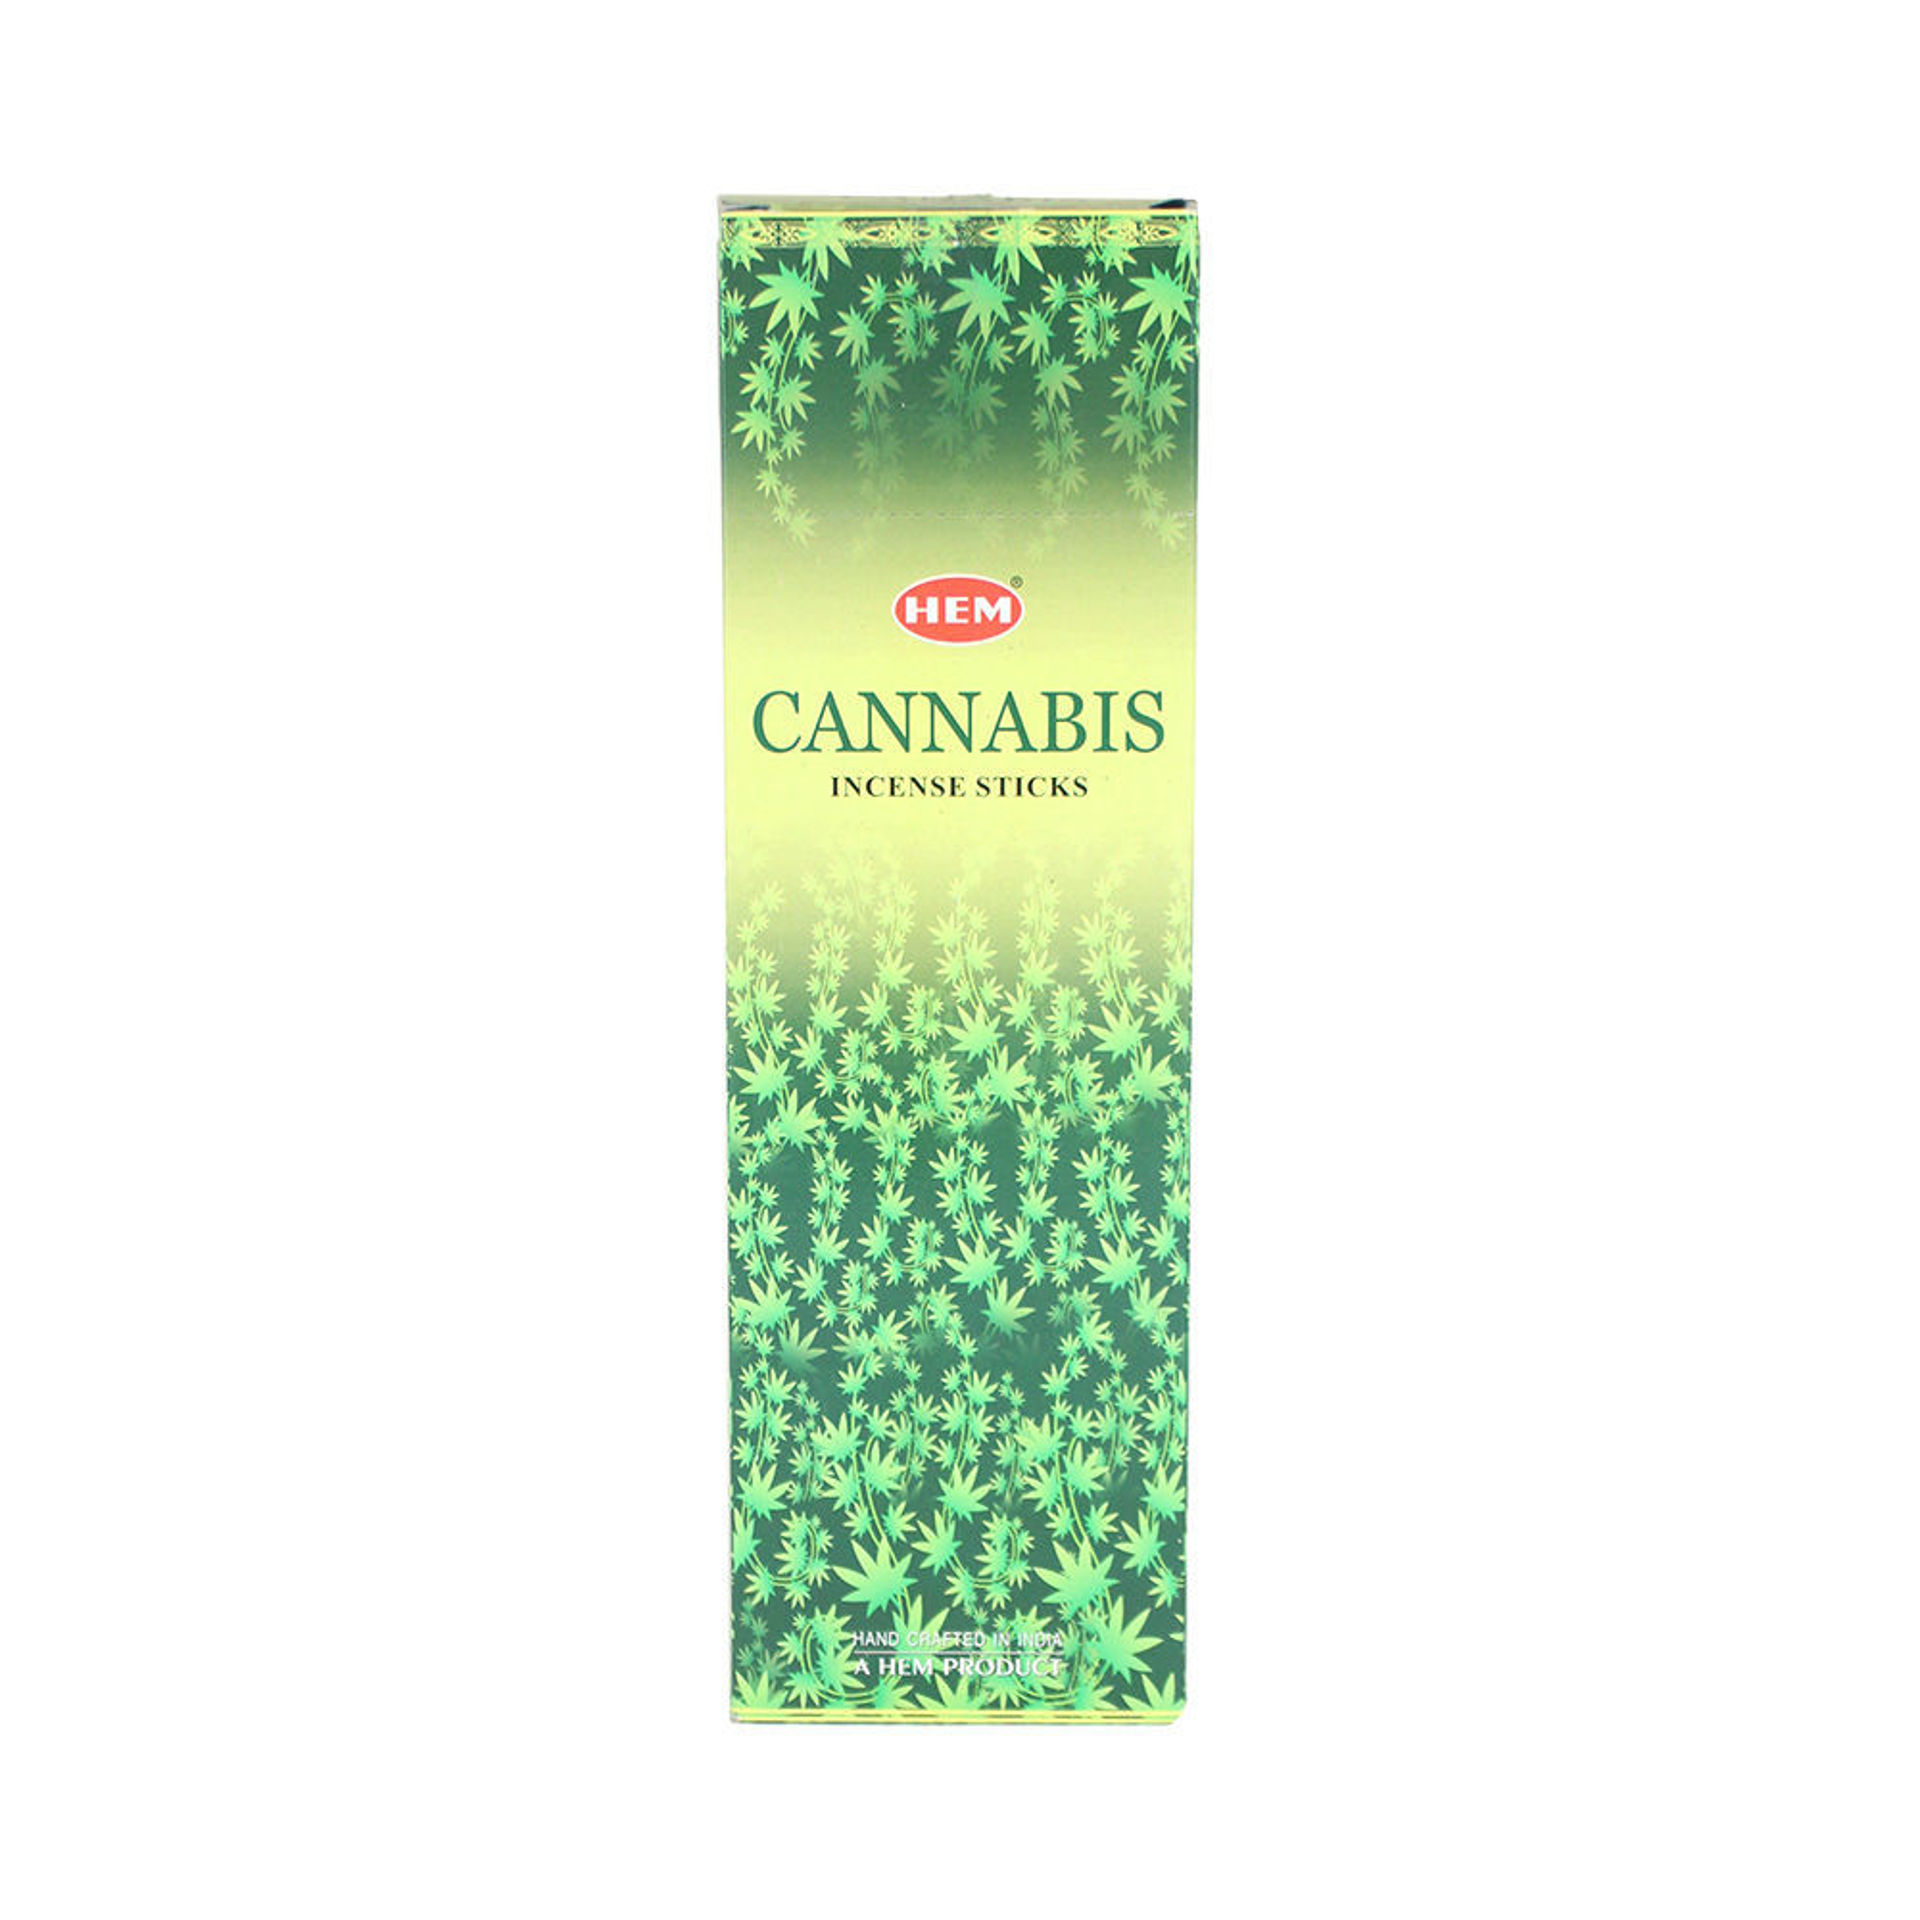 Picture of Cannabis Incense: 25 Pack = 200 Sticks